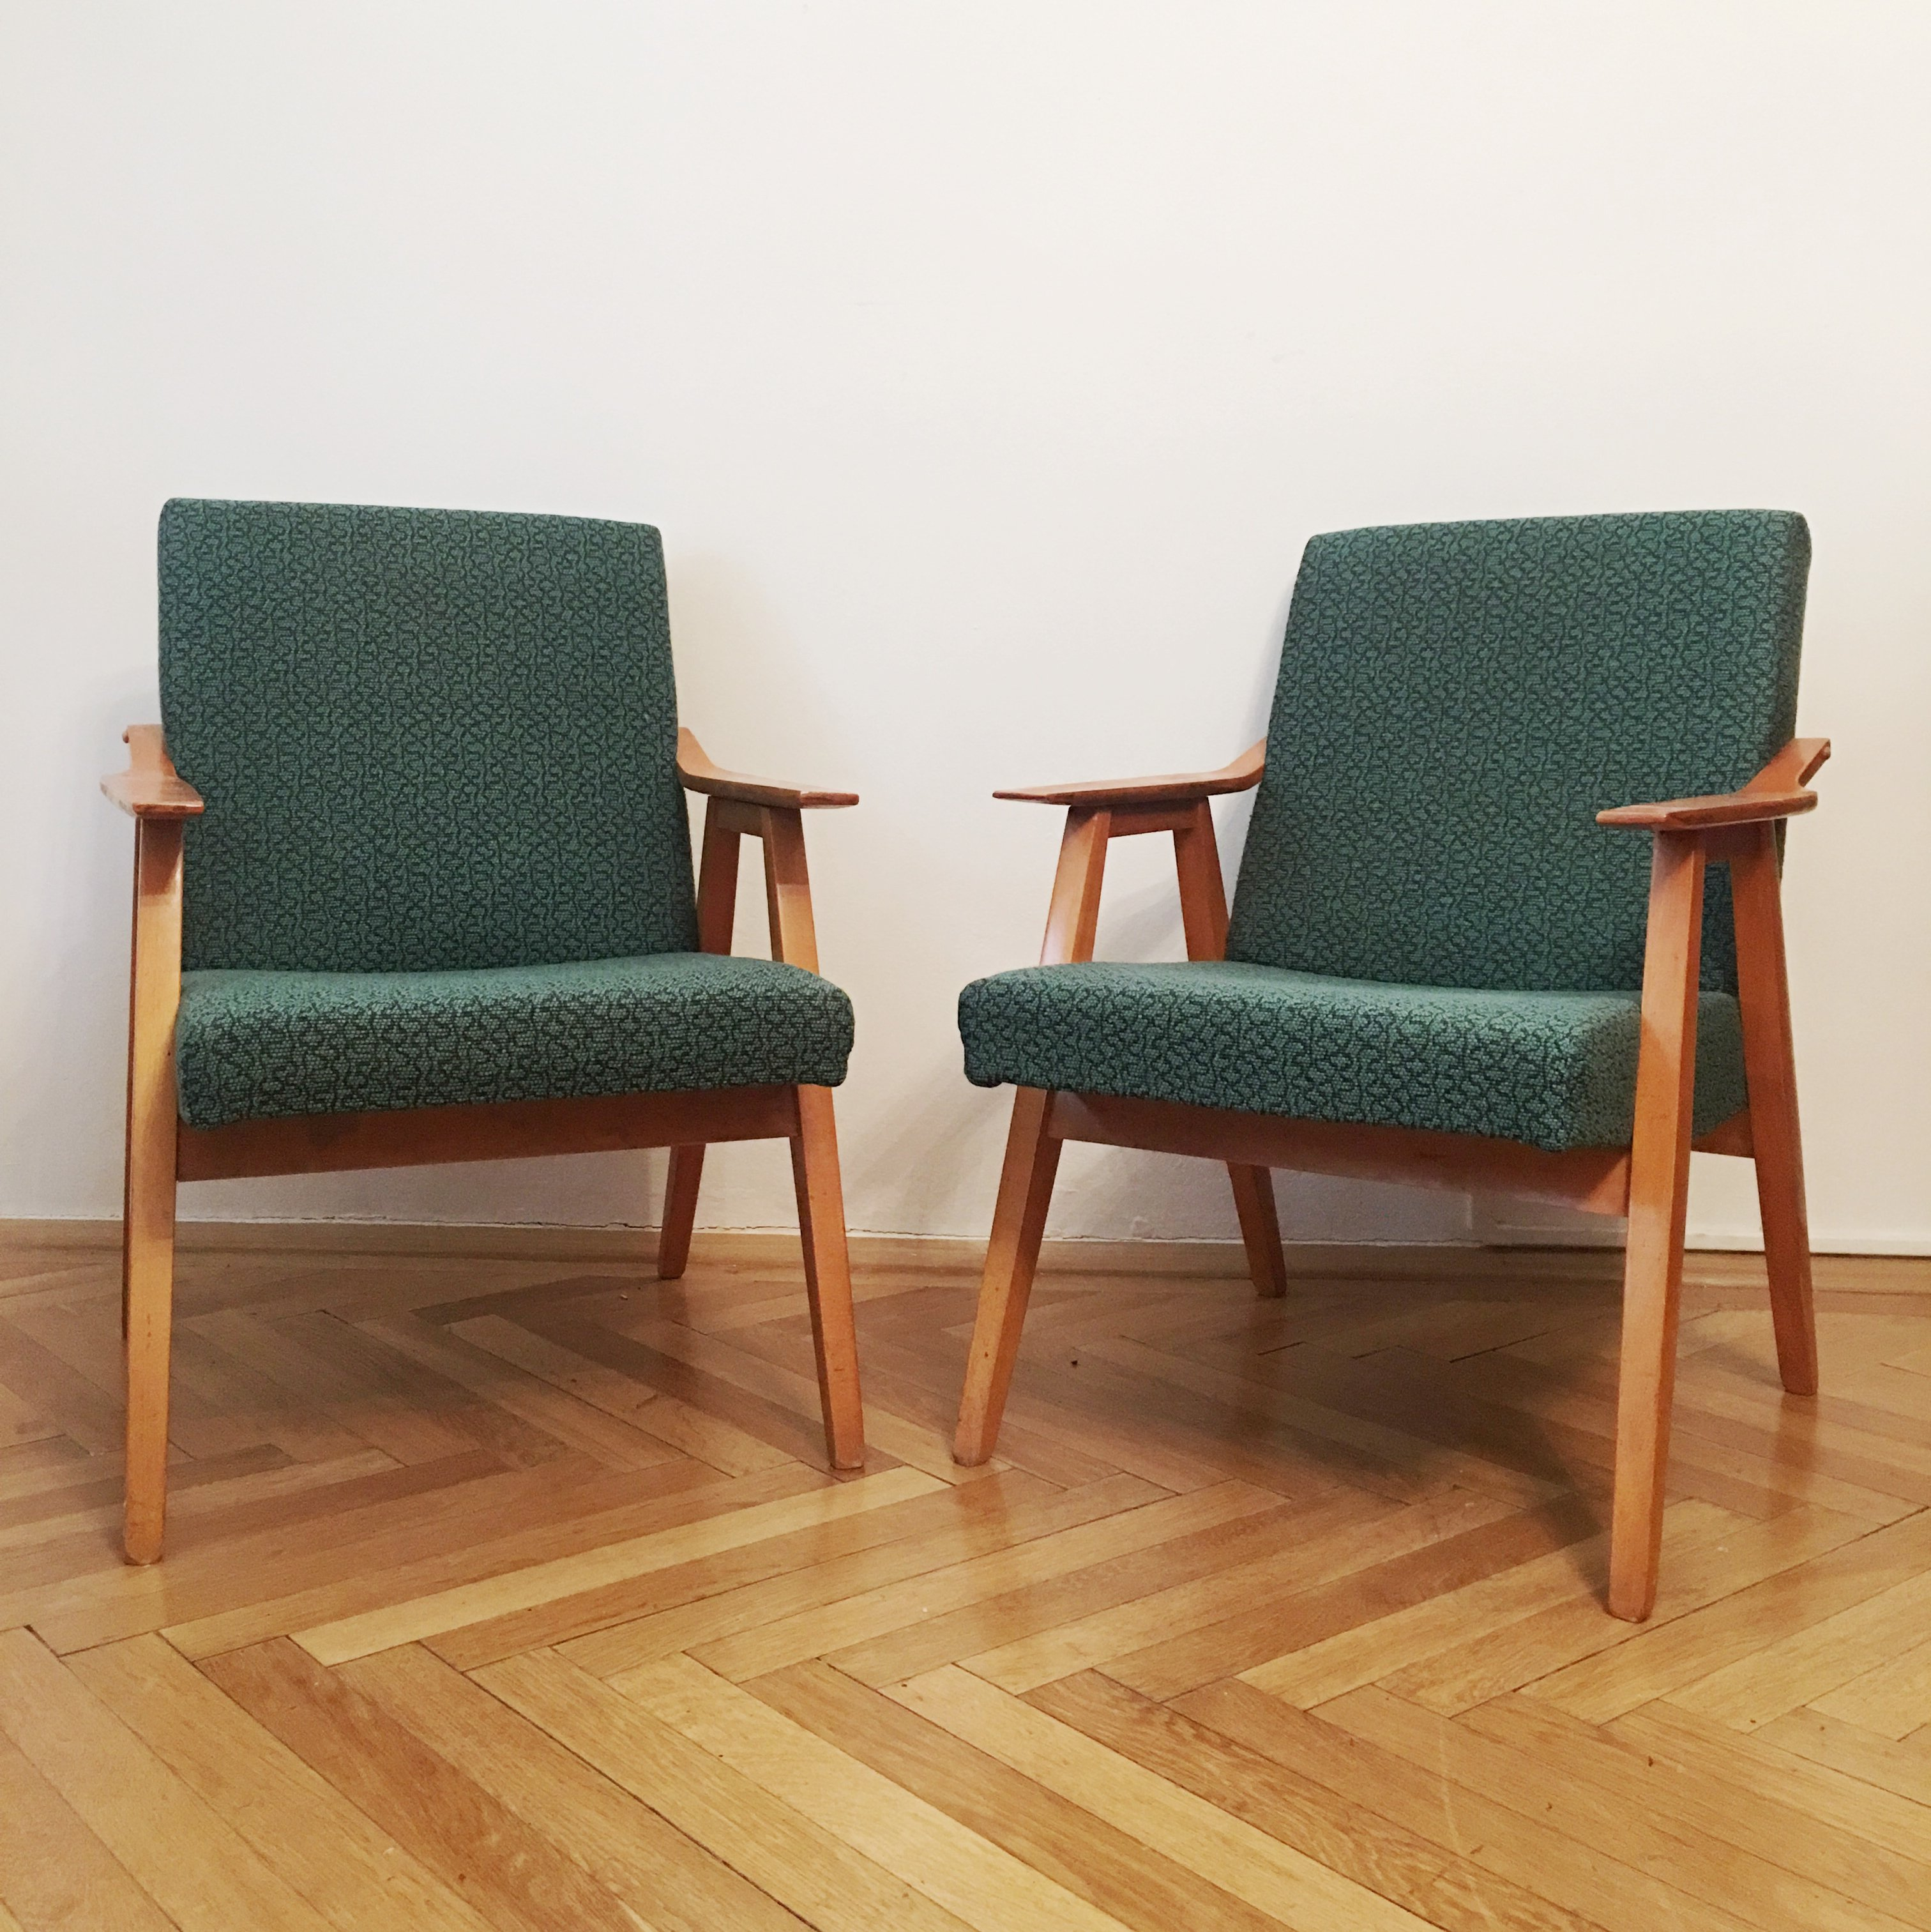 Pair Of Green Vintage Armchairs 1960s 94823